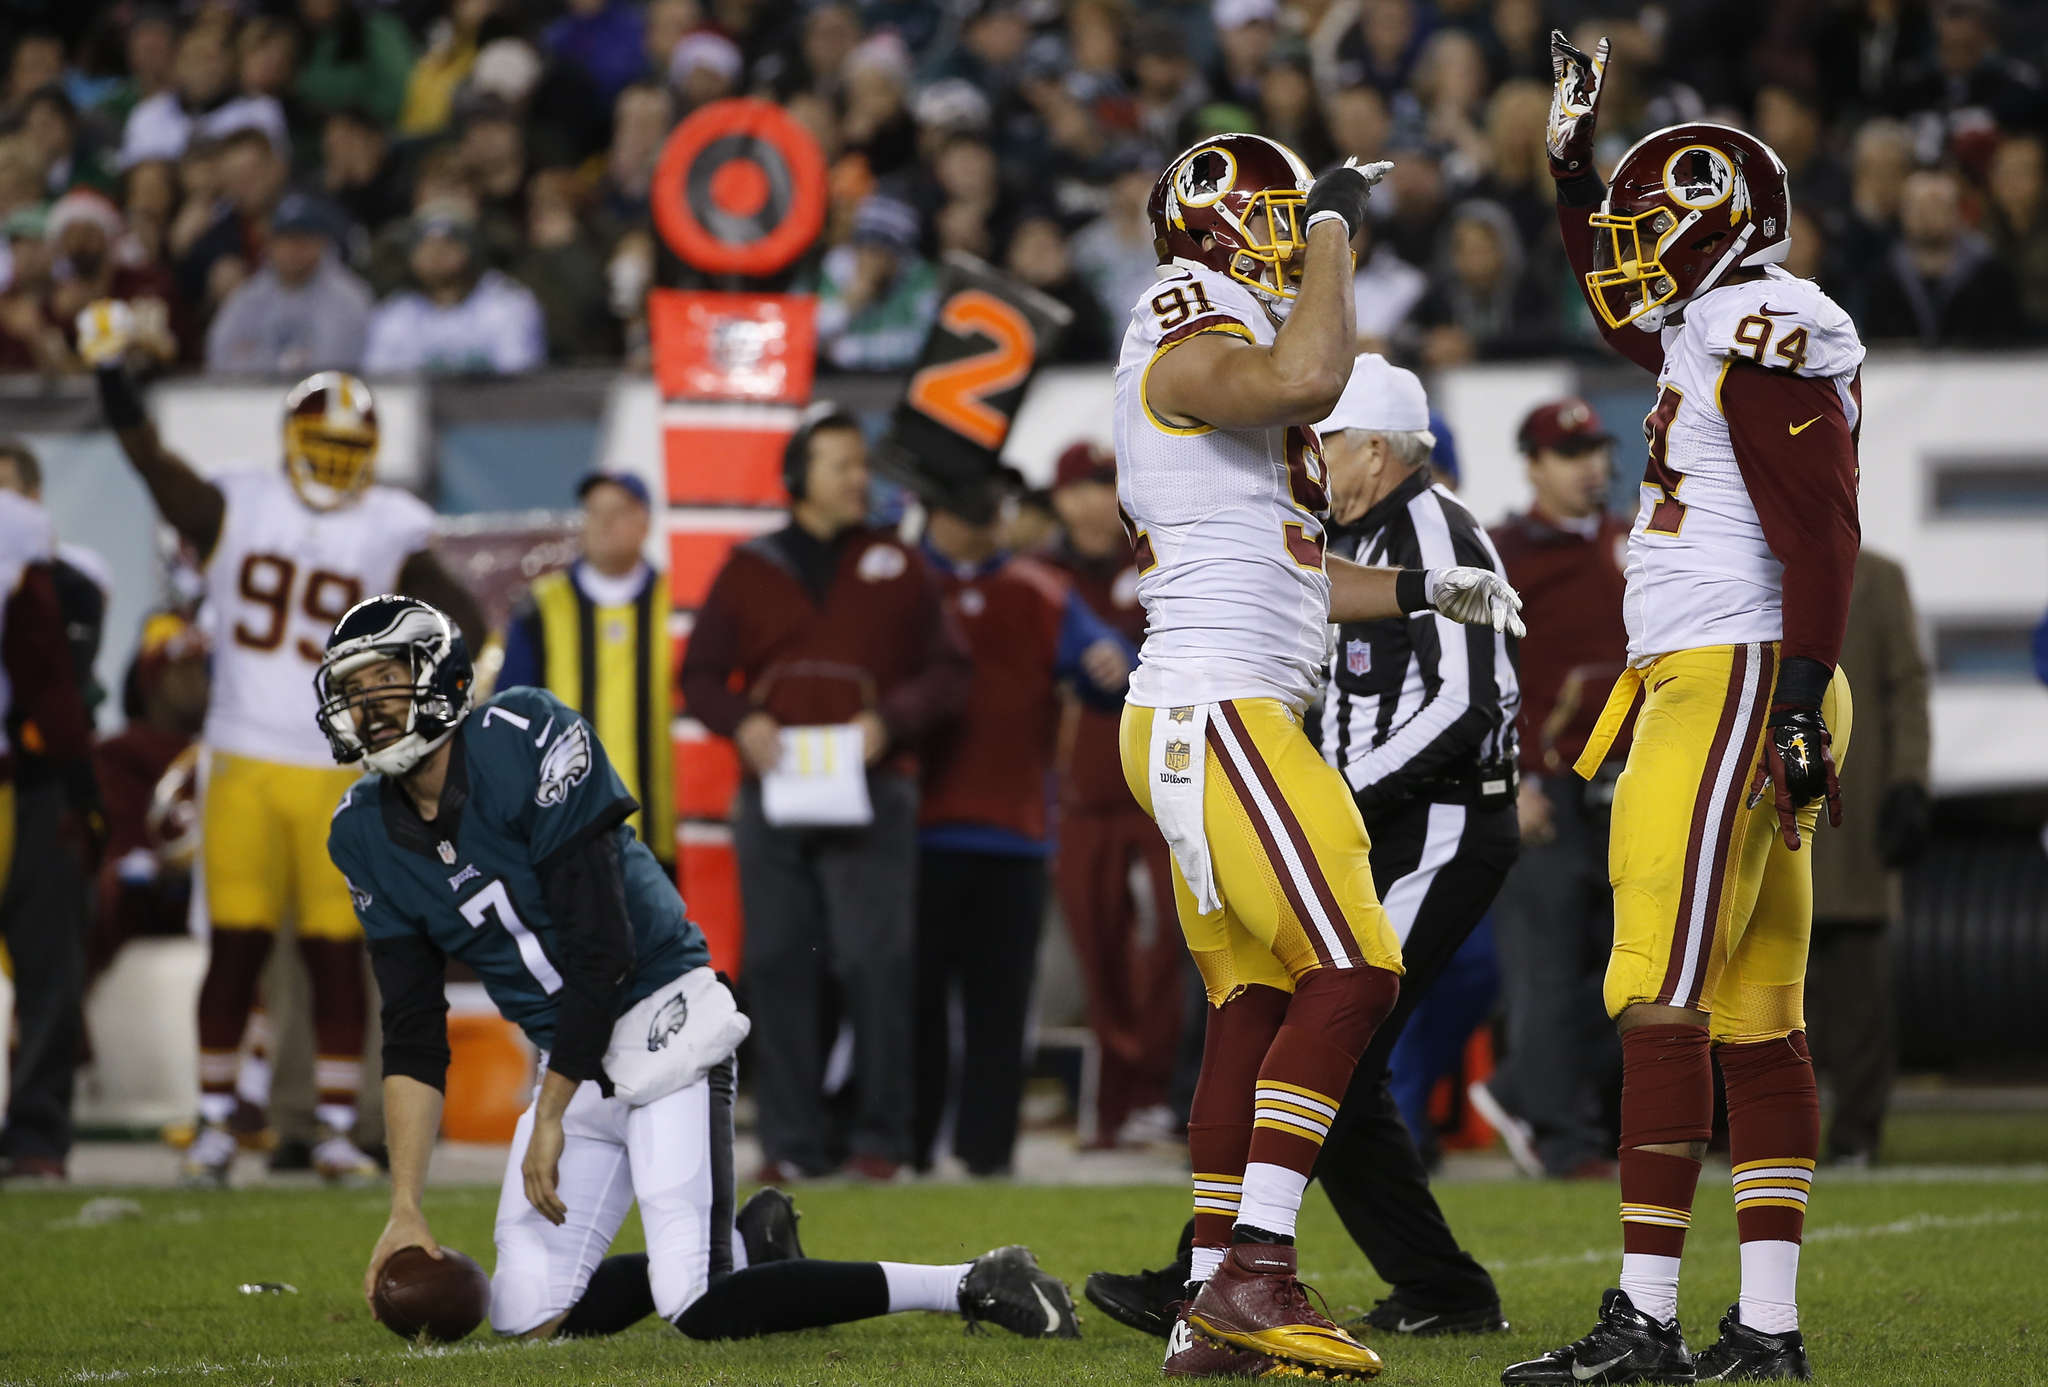 Sam Bradford gets up slowly after being sacked as Redskins defenders Ryan Kerrigan (left) and Preston Smith exchange high-fives. MICHAEL PEREZ / AP